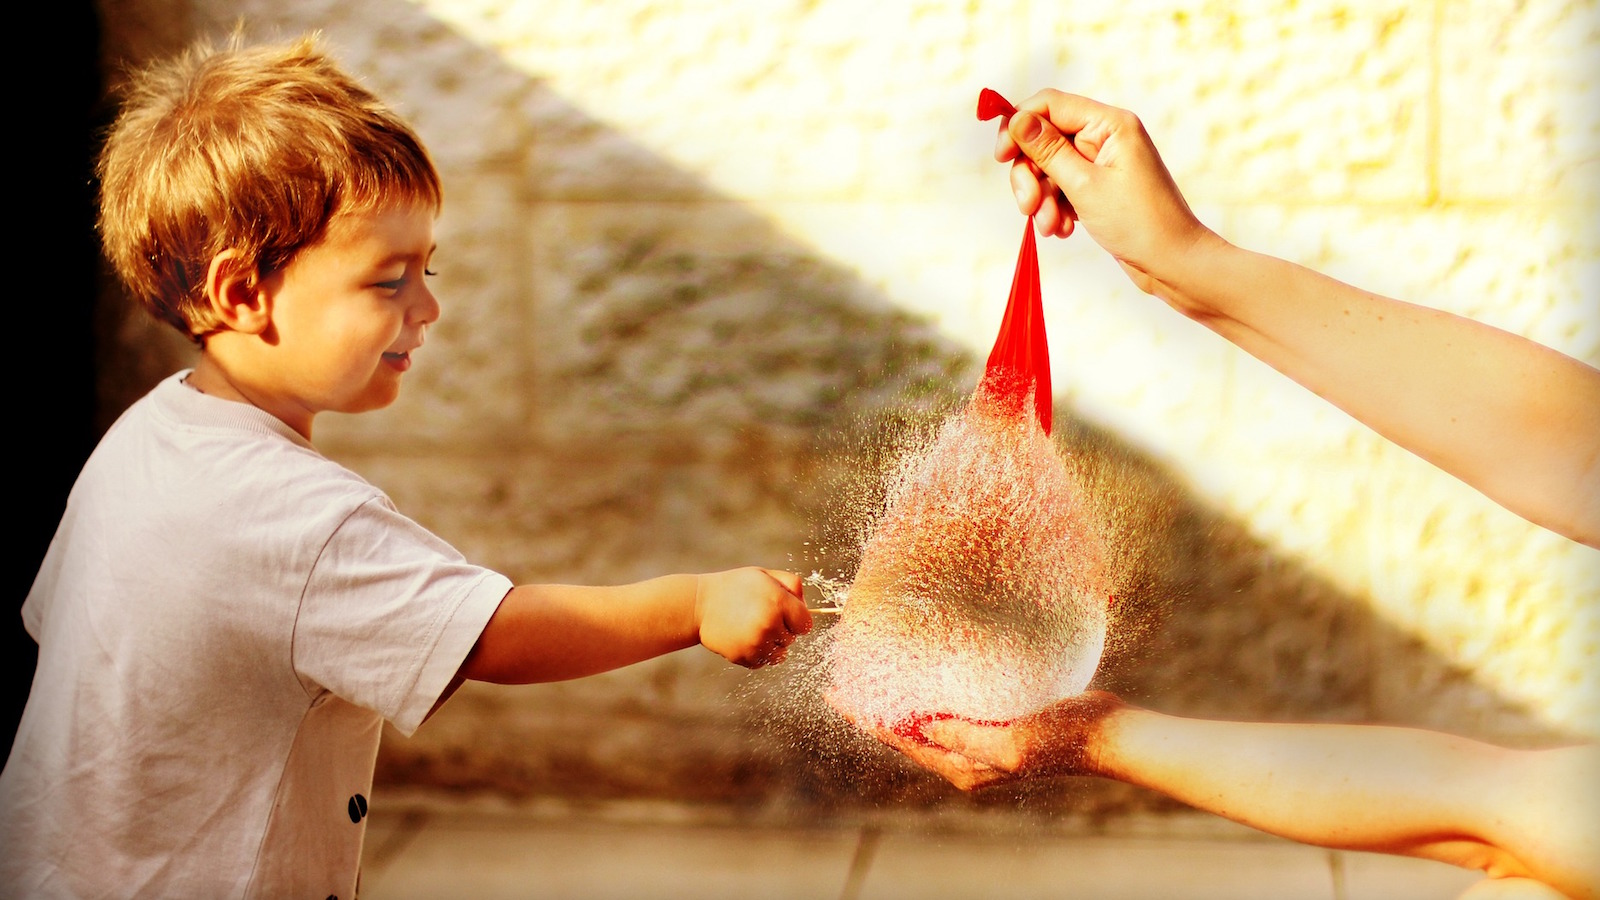 child about to pop water balloon